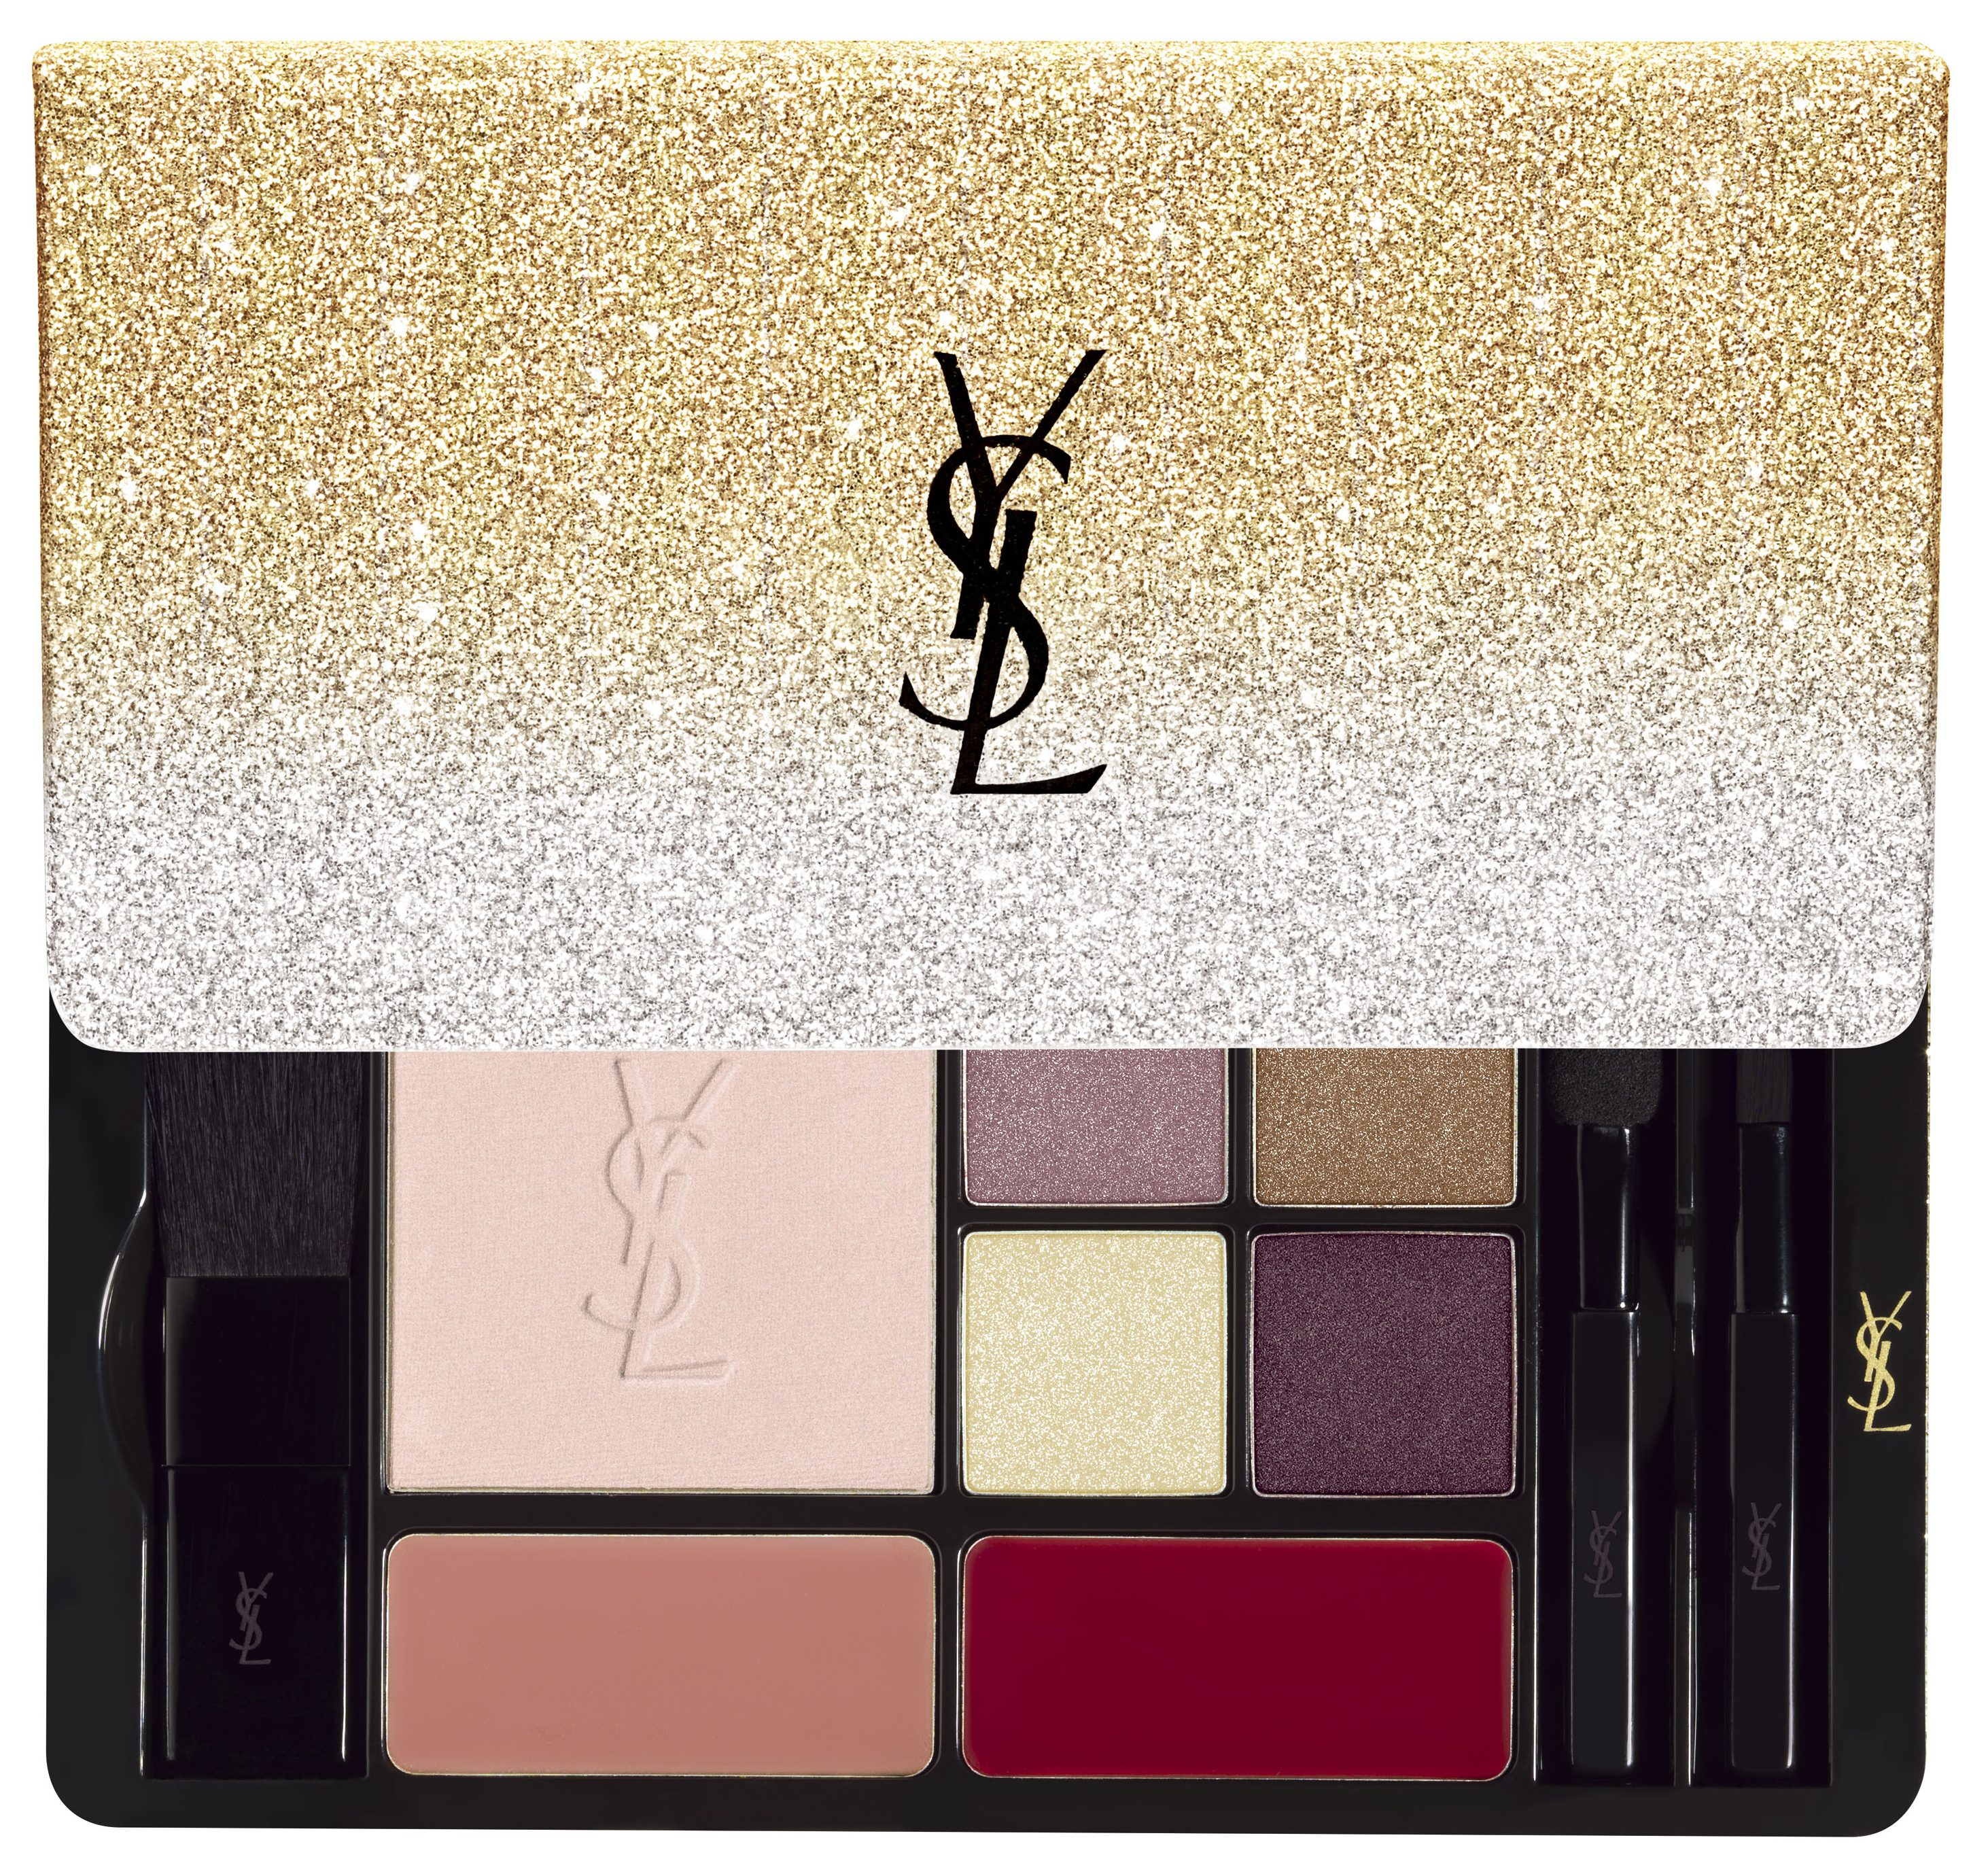 ysl-sparkle-clash-multi-usage-palette-collector-opened